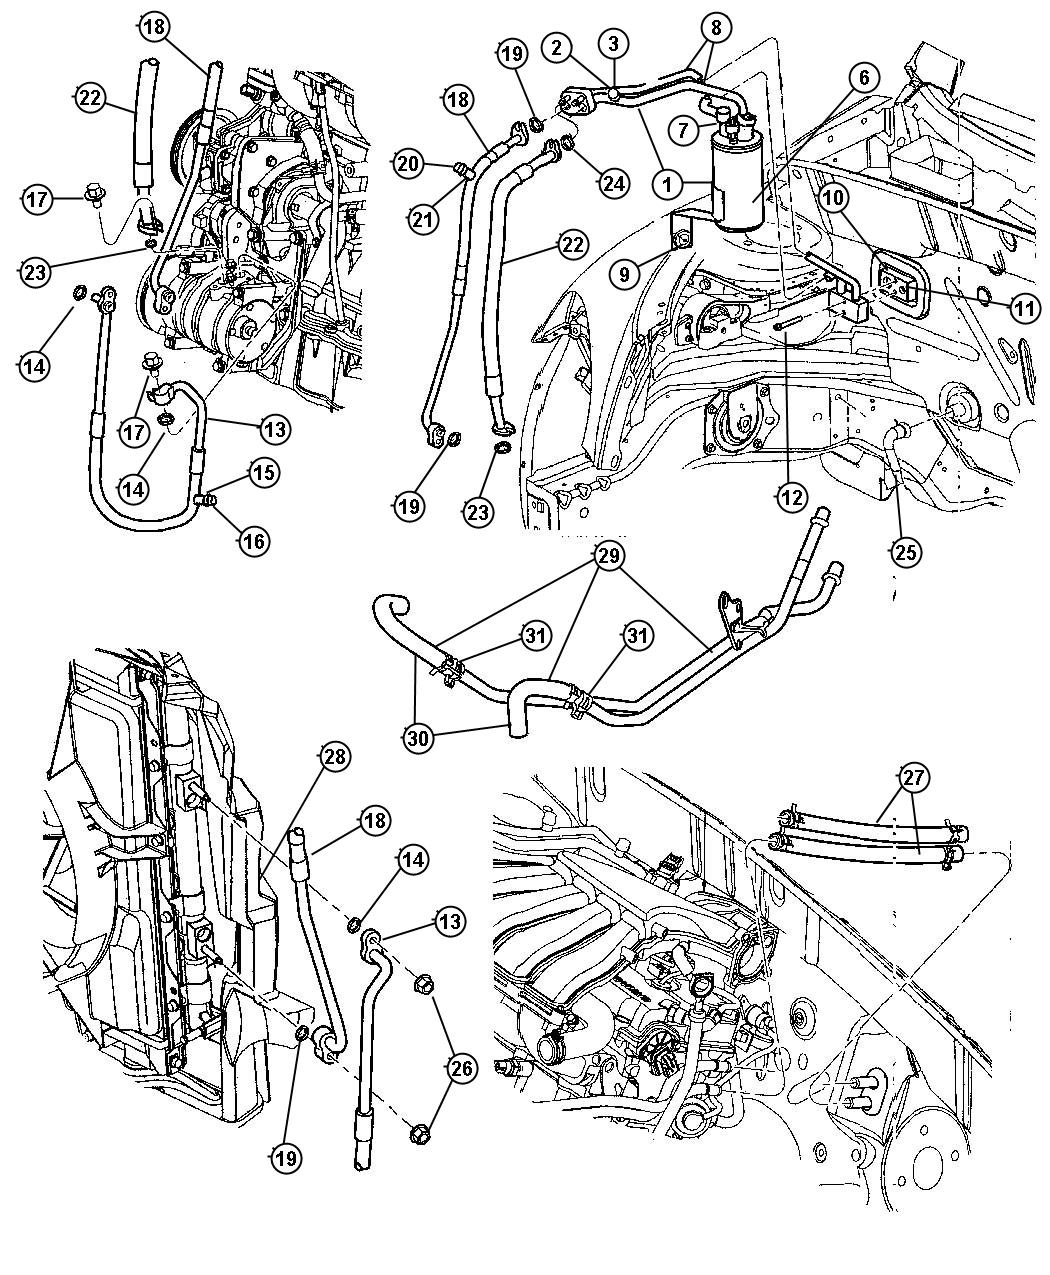 Service Manual Chrysler Pt Cruiser Heater Hose Replacement